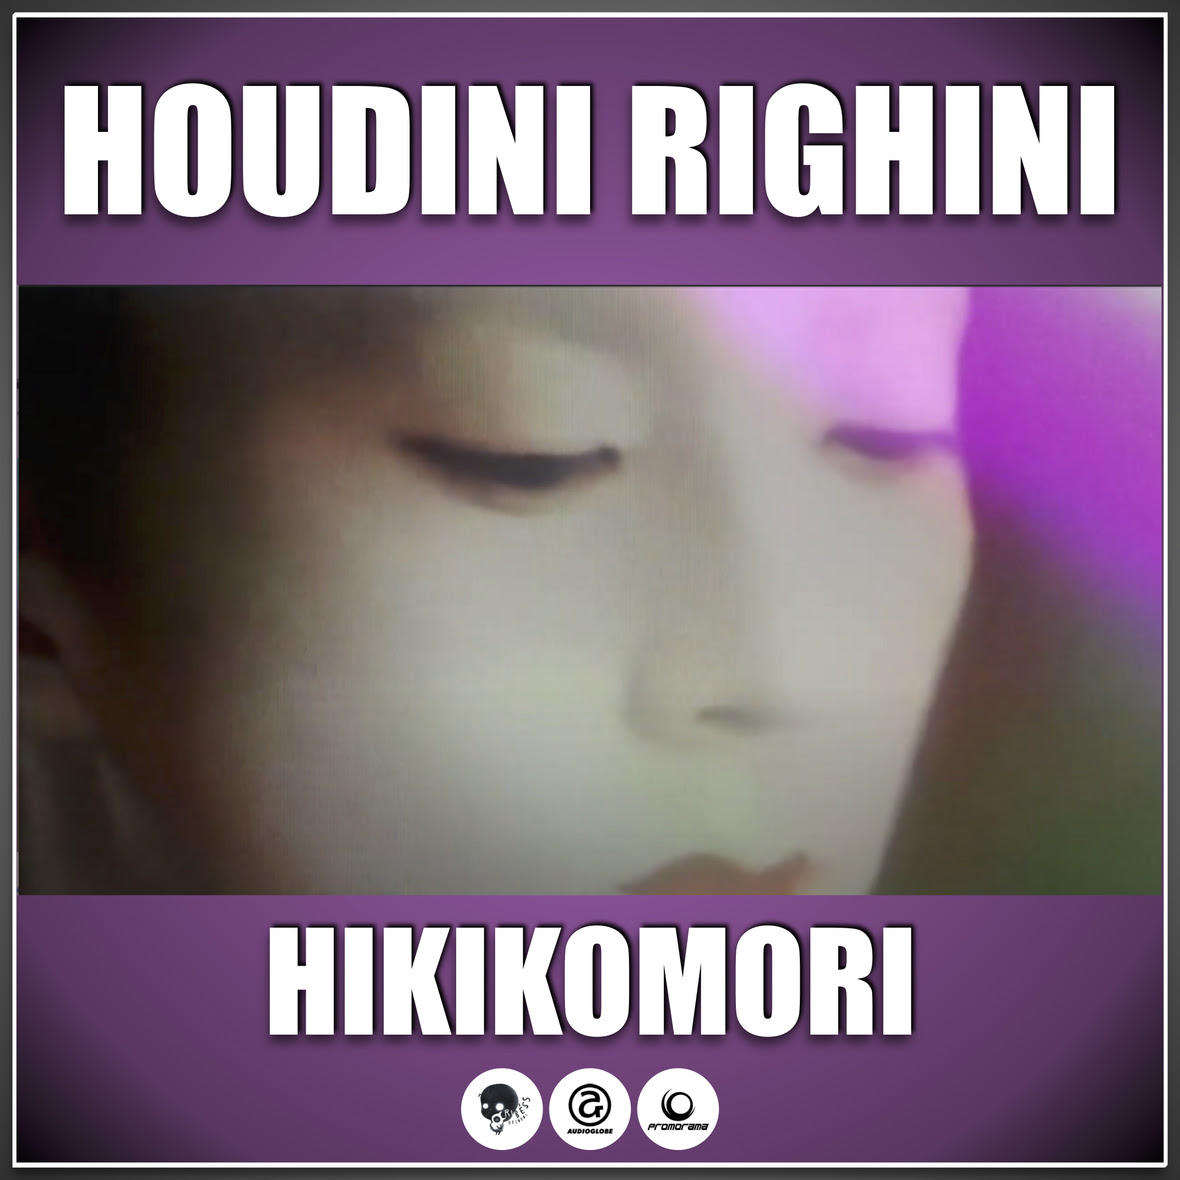 Houdini Righini - Hikikomori